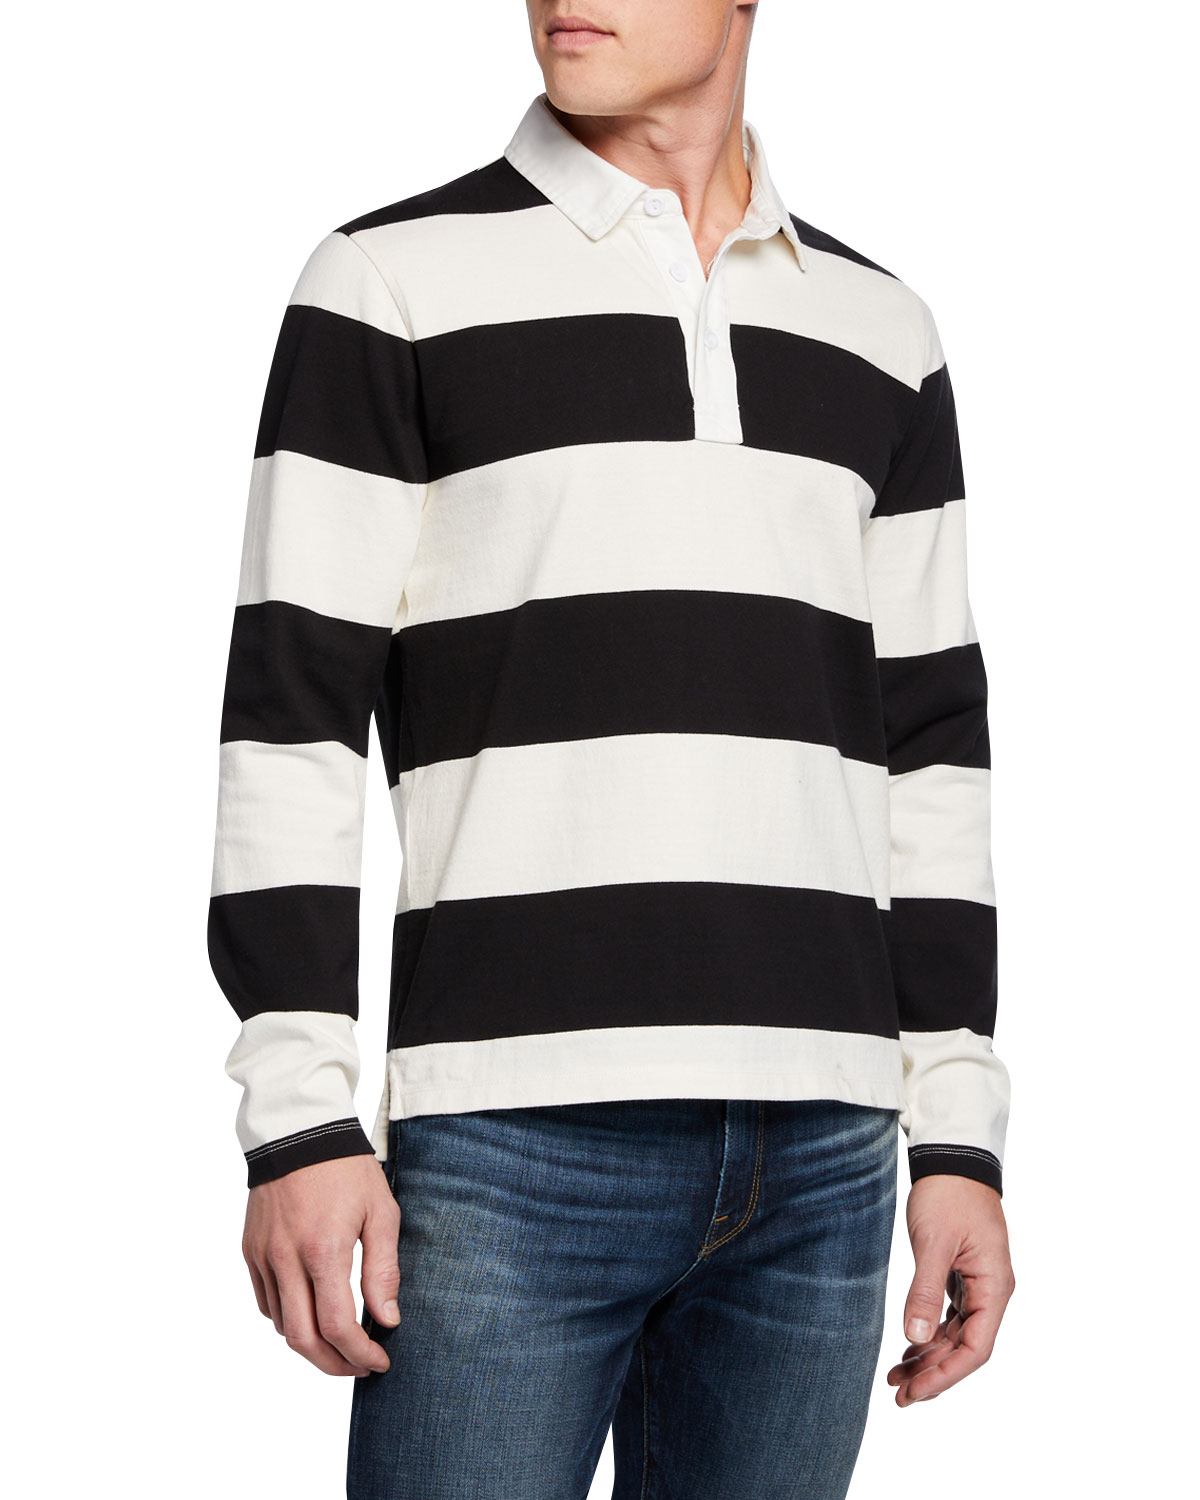 f2c34f5a7c0 FRAME Men's Long-Sleeve Striped Rugby Polo Shirt | Neiman Marcus